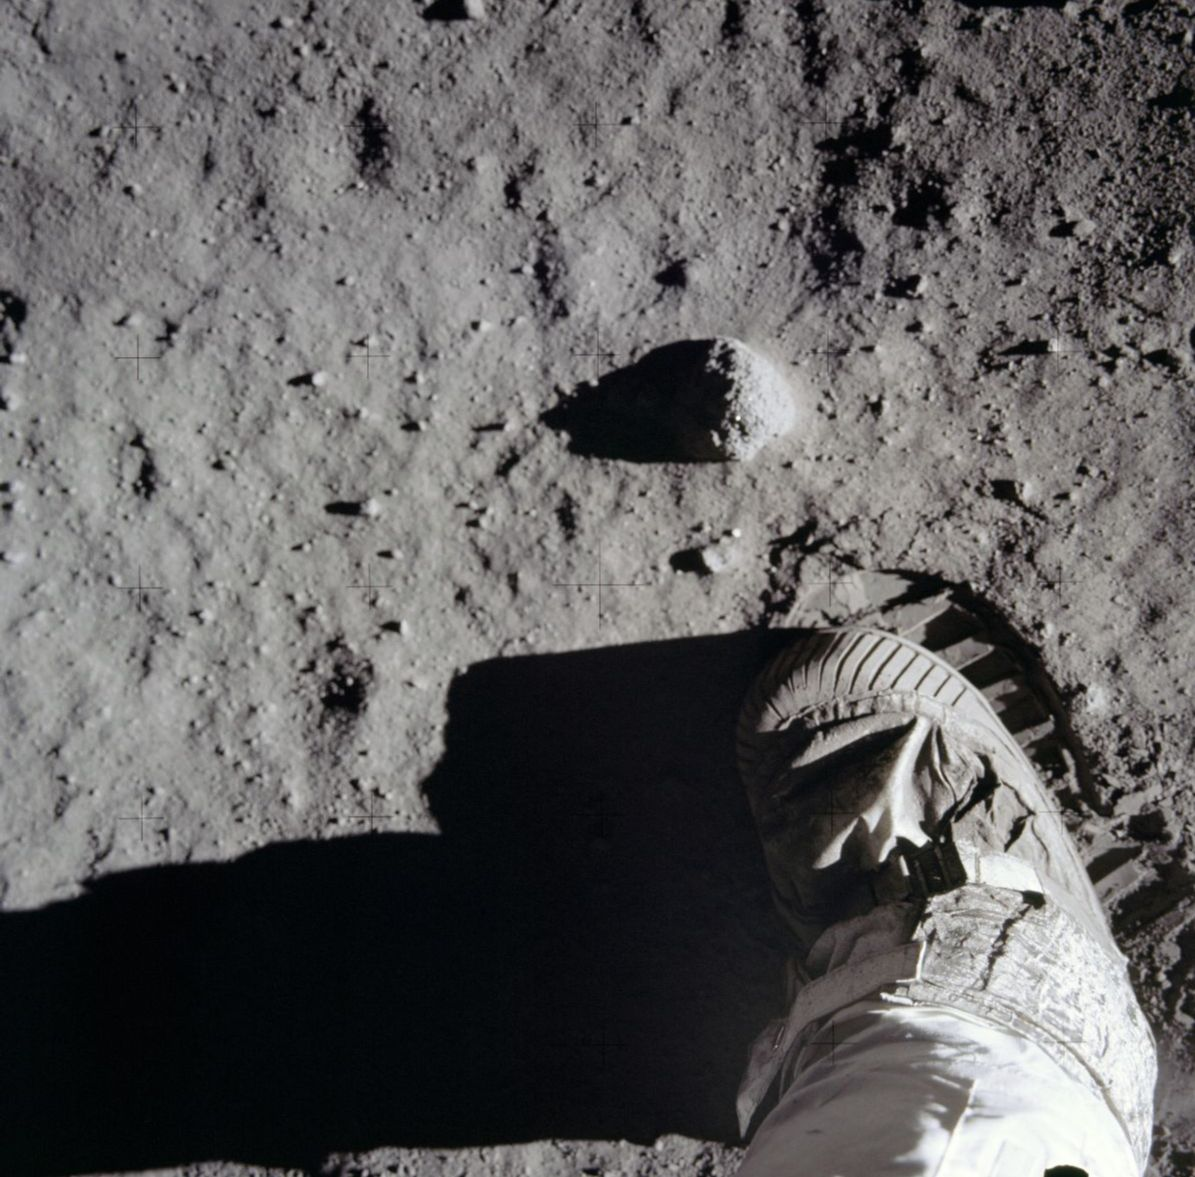 Photograph of lunar surface with astronaut boot in field of view